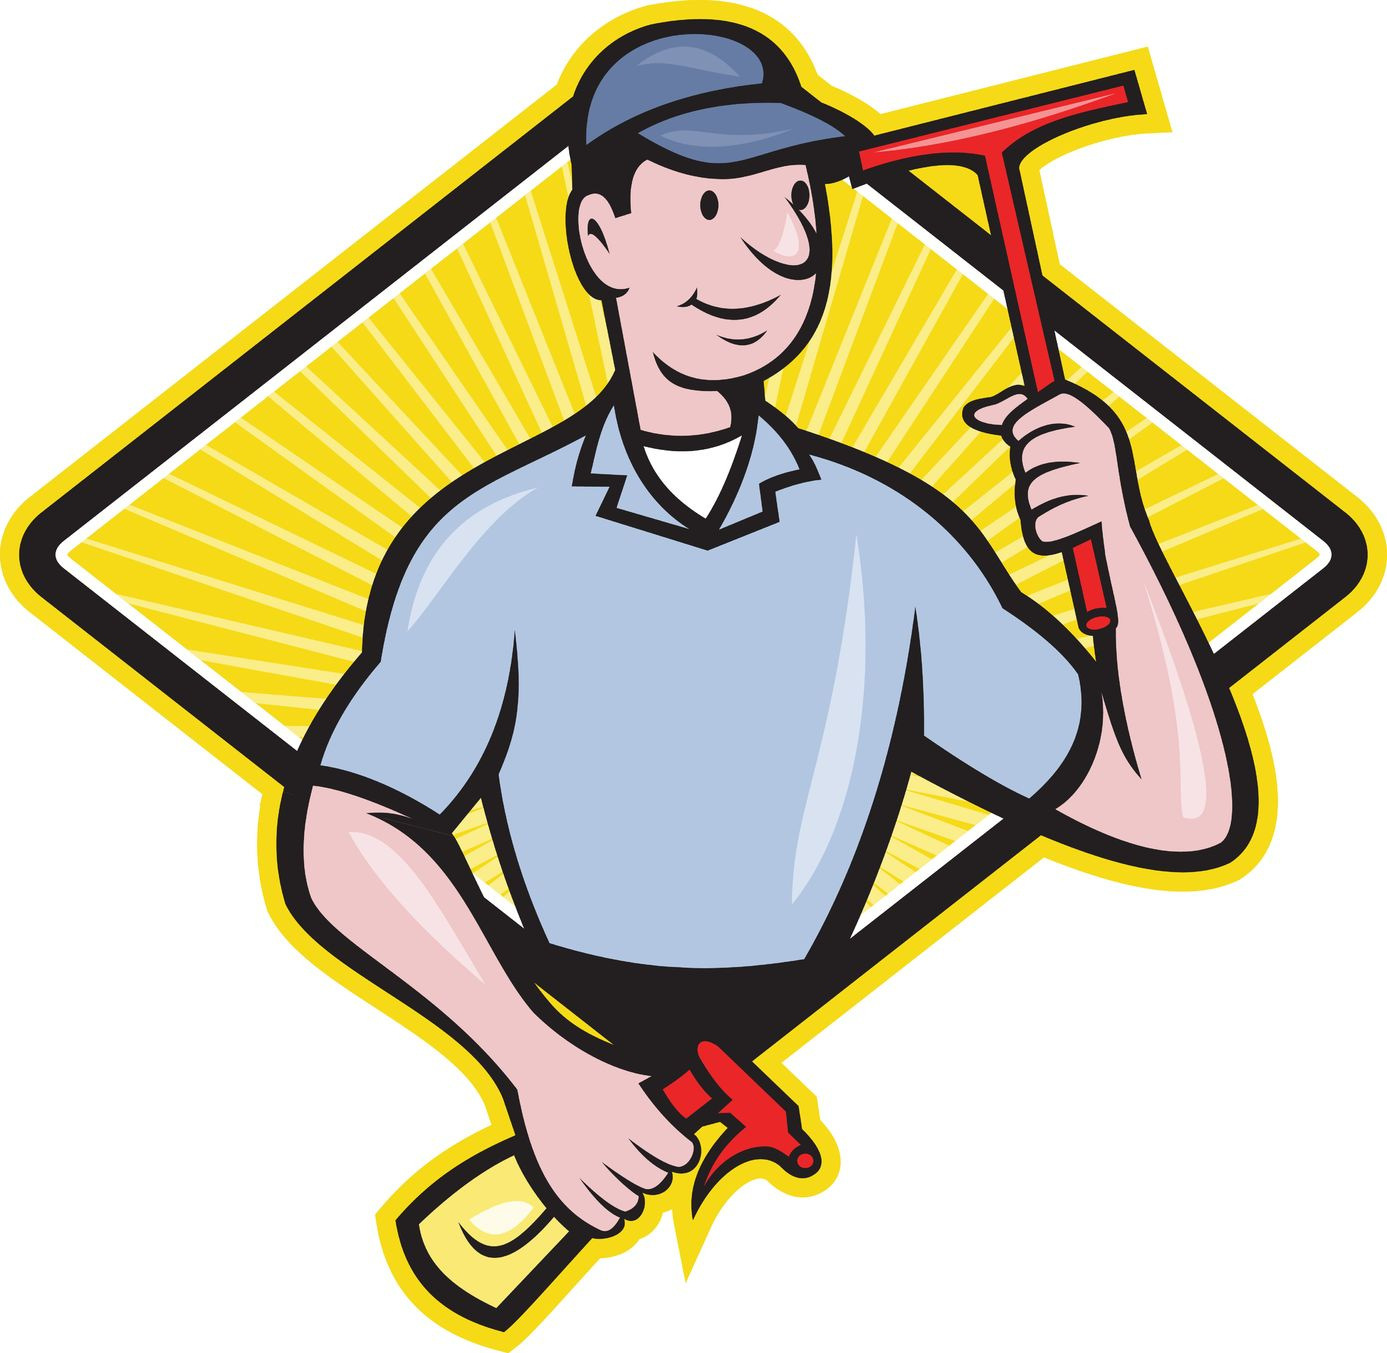 Window Cleaning Clip Art - Cliparts.co